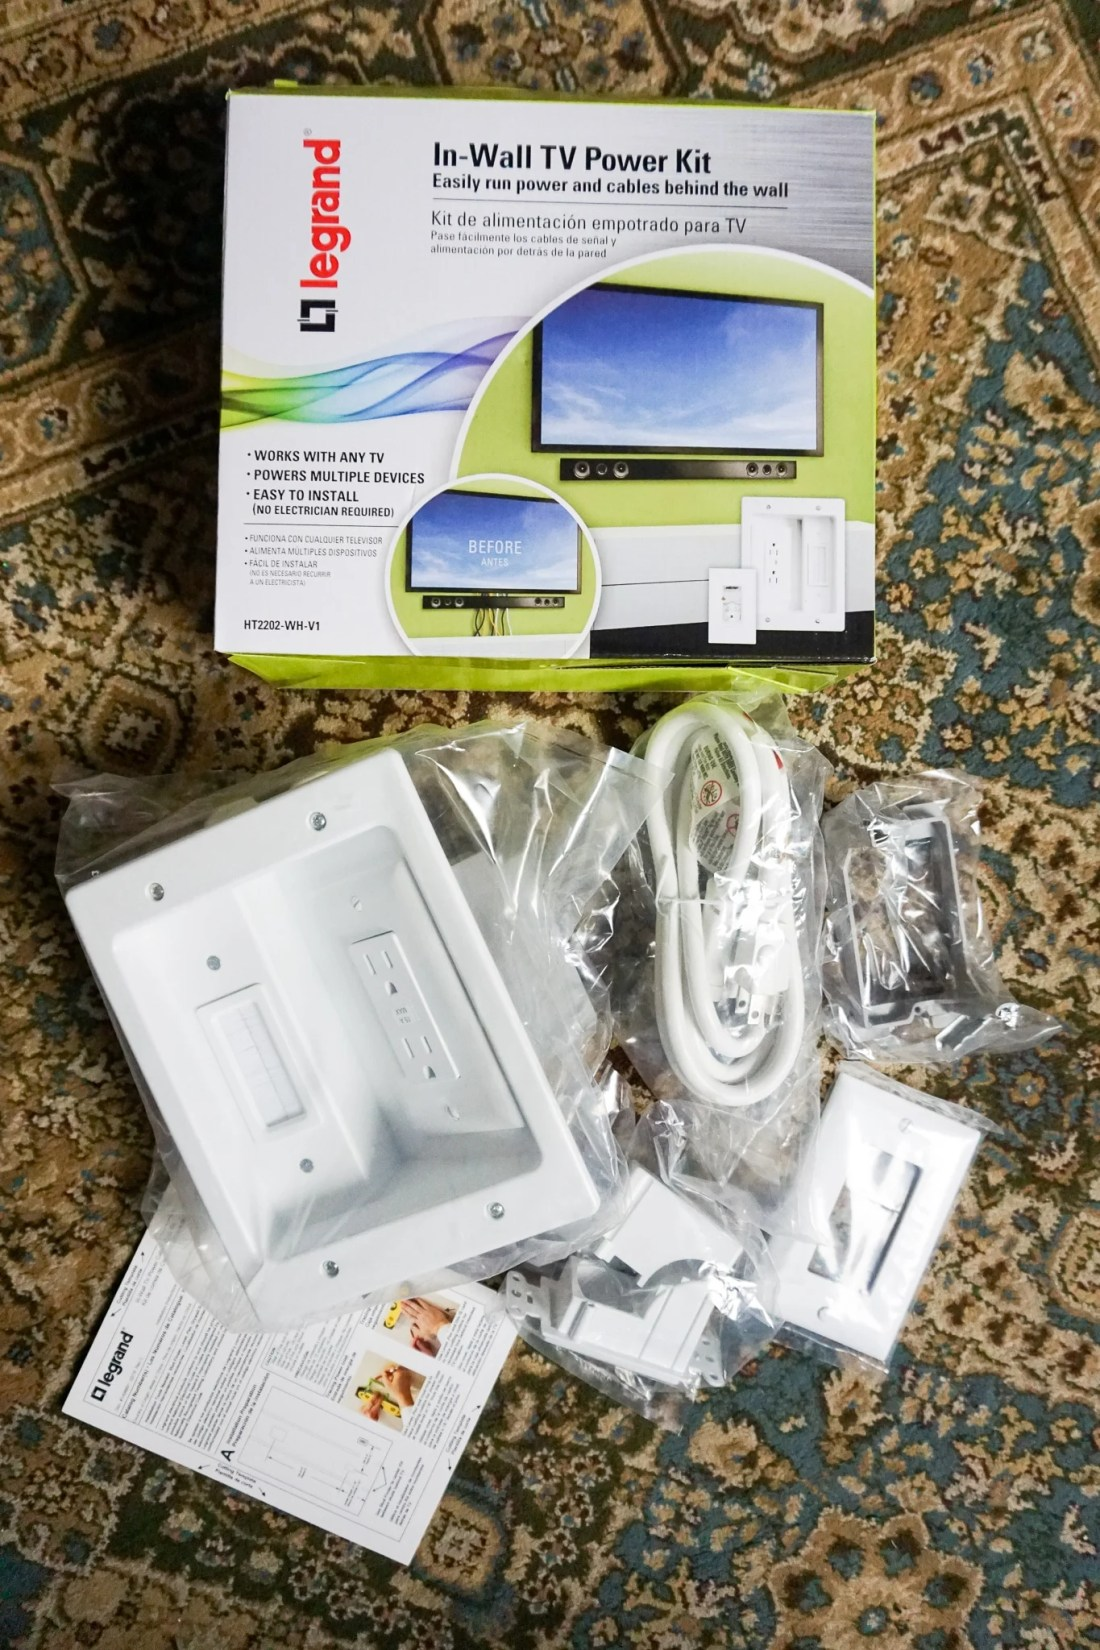 Legrand - In-Wall TV Power Kit Whats Inside. Hide those ugly TV Cables with the Legrand - In-Wall TV Power Kit, read the full review..